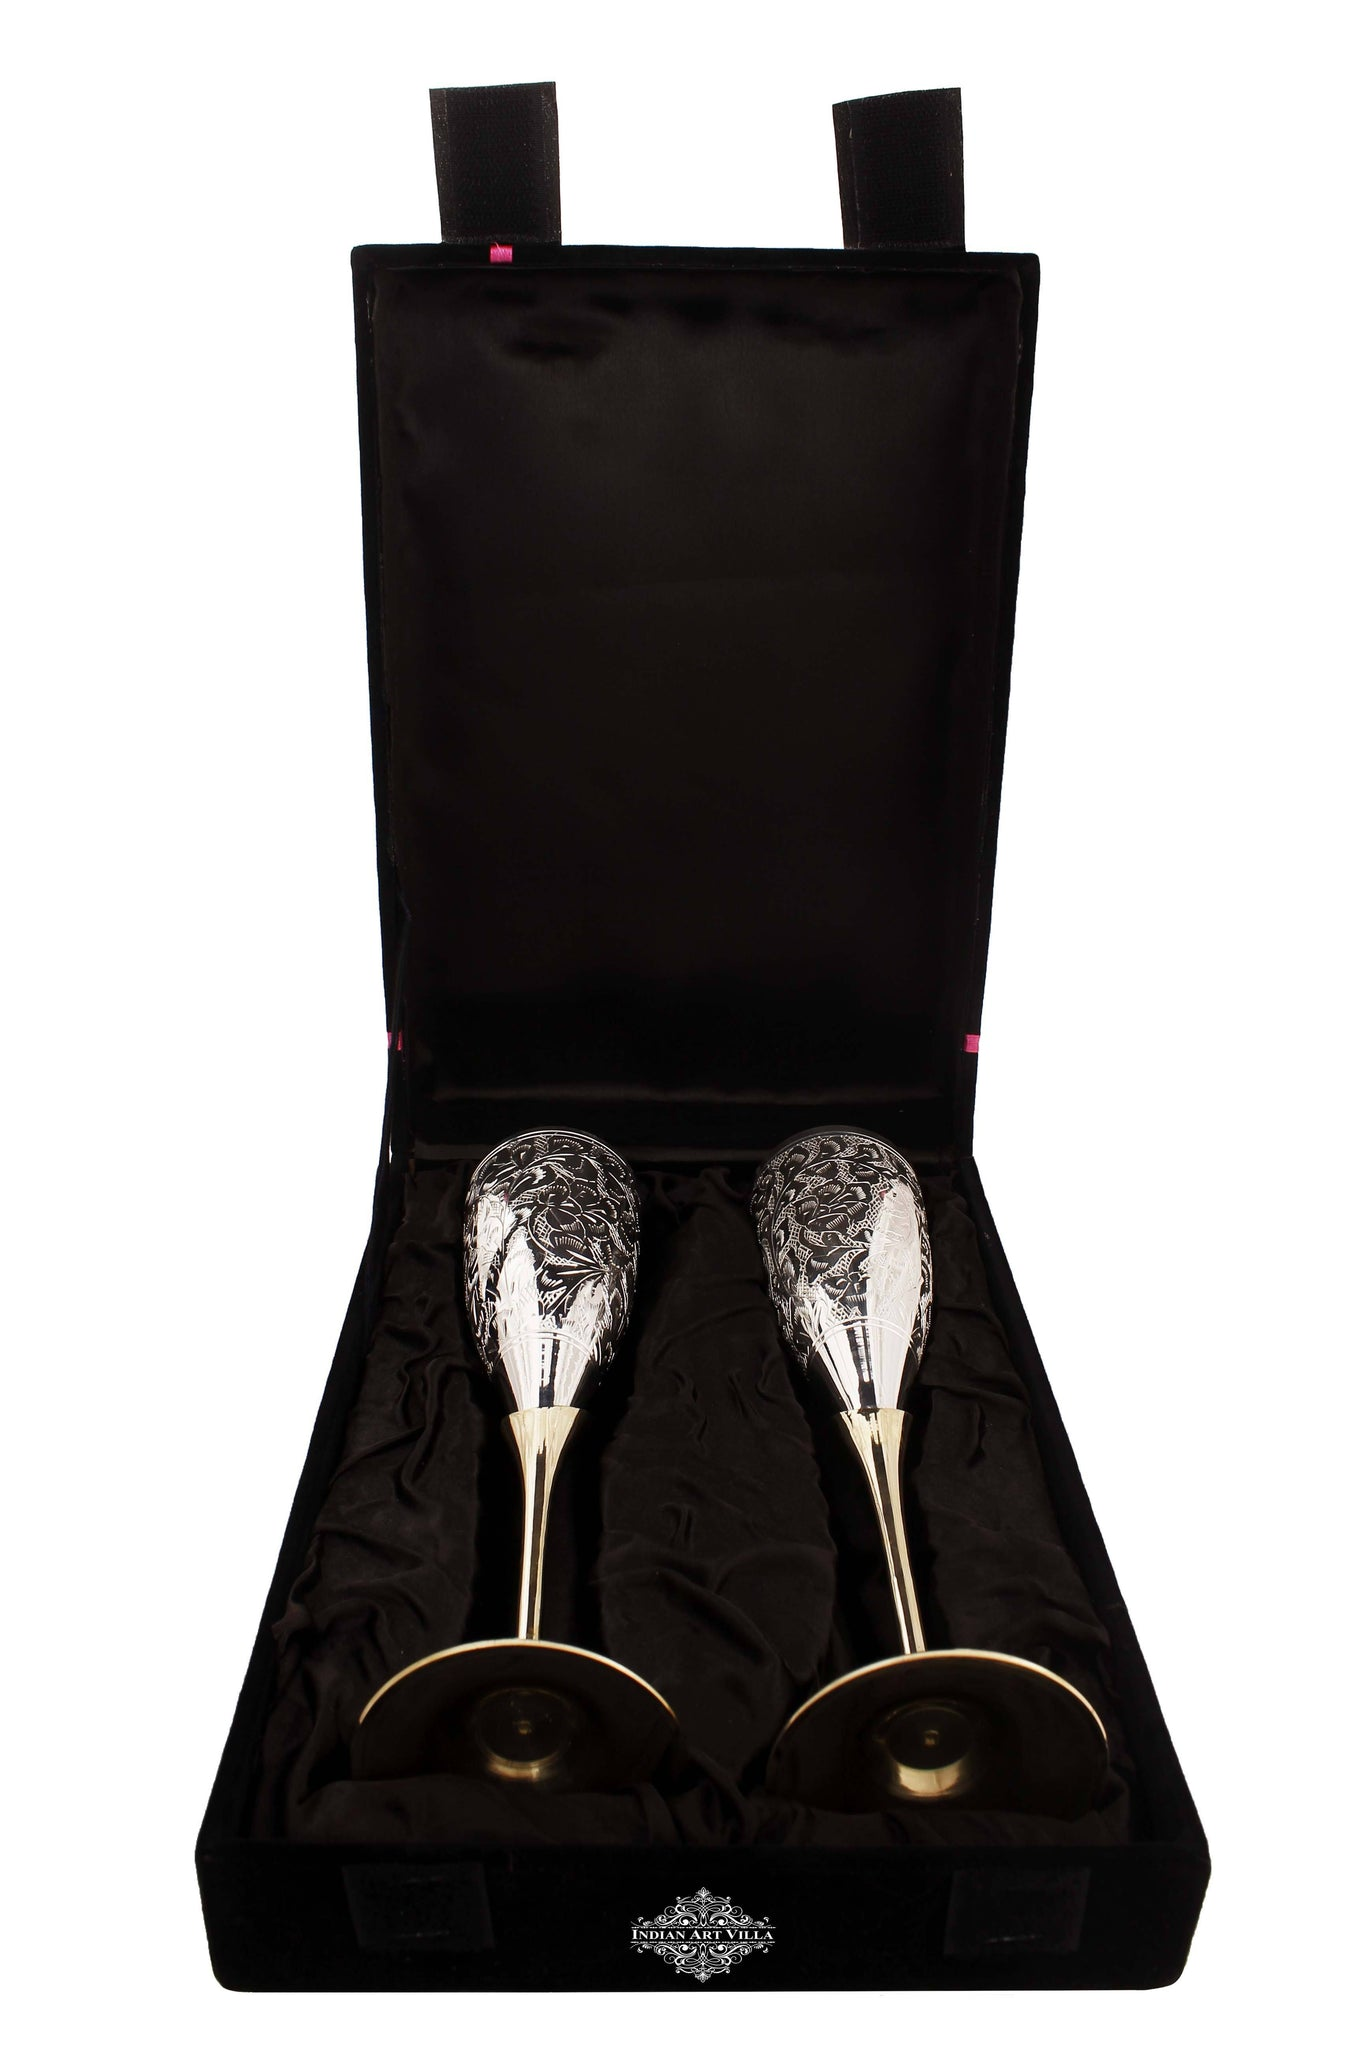 Engraved Silver Plated Brass Champagne Flutes Wine Glass Set